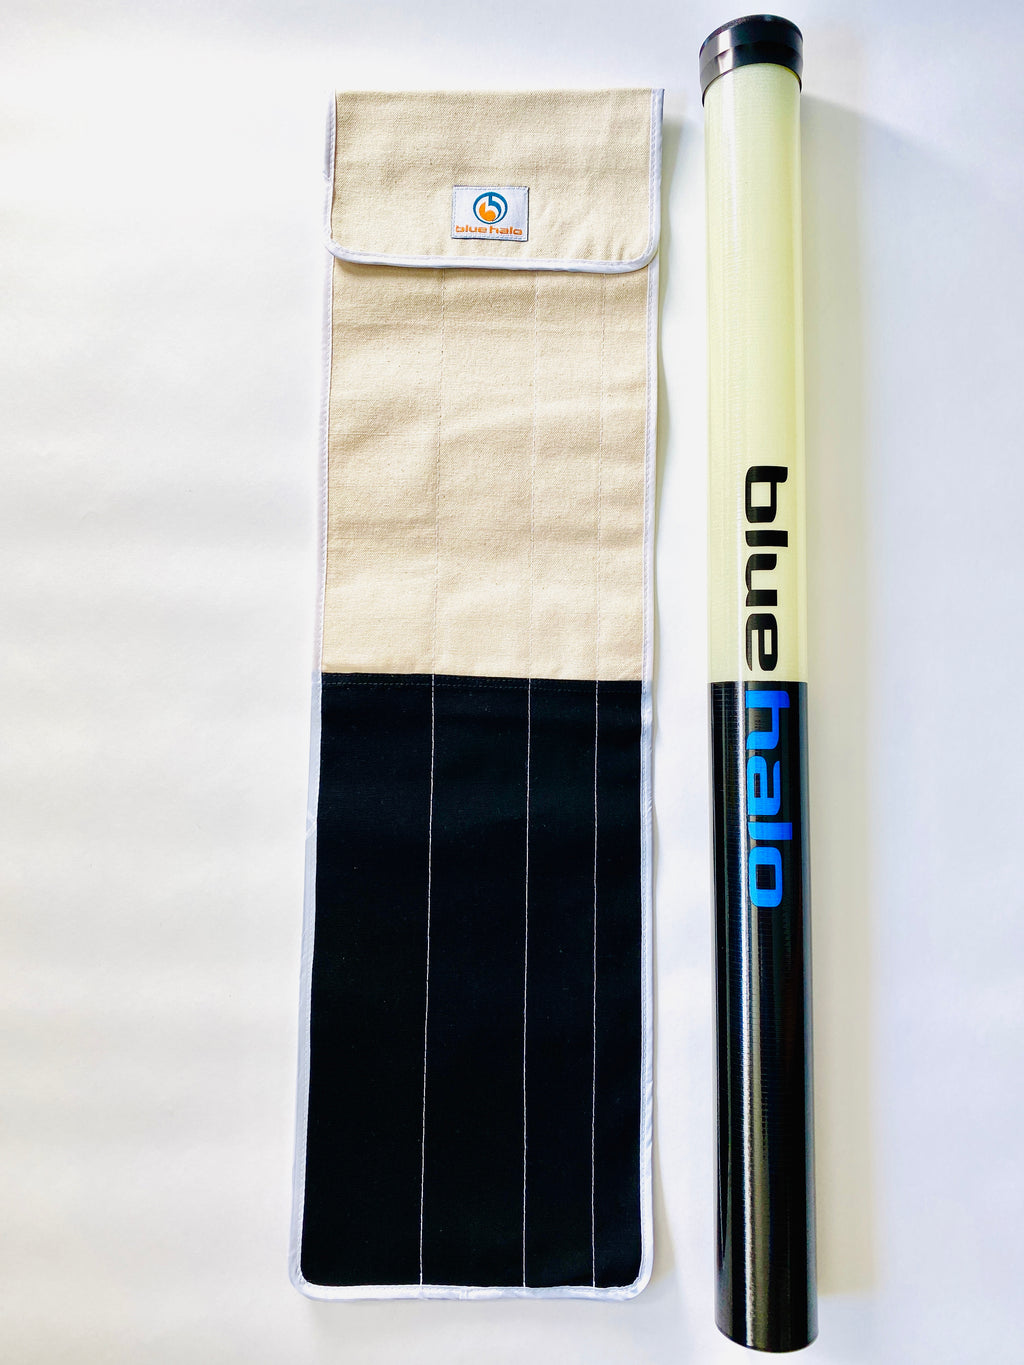 ROD SOCK AND GLASS | GRAPHITE TUBE 4 PIECE COMBO 2 TONE